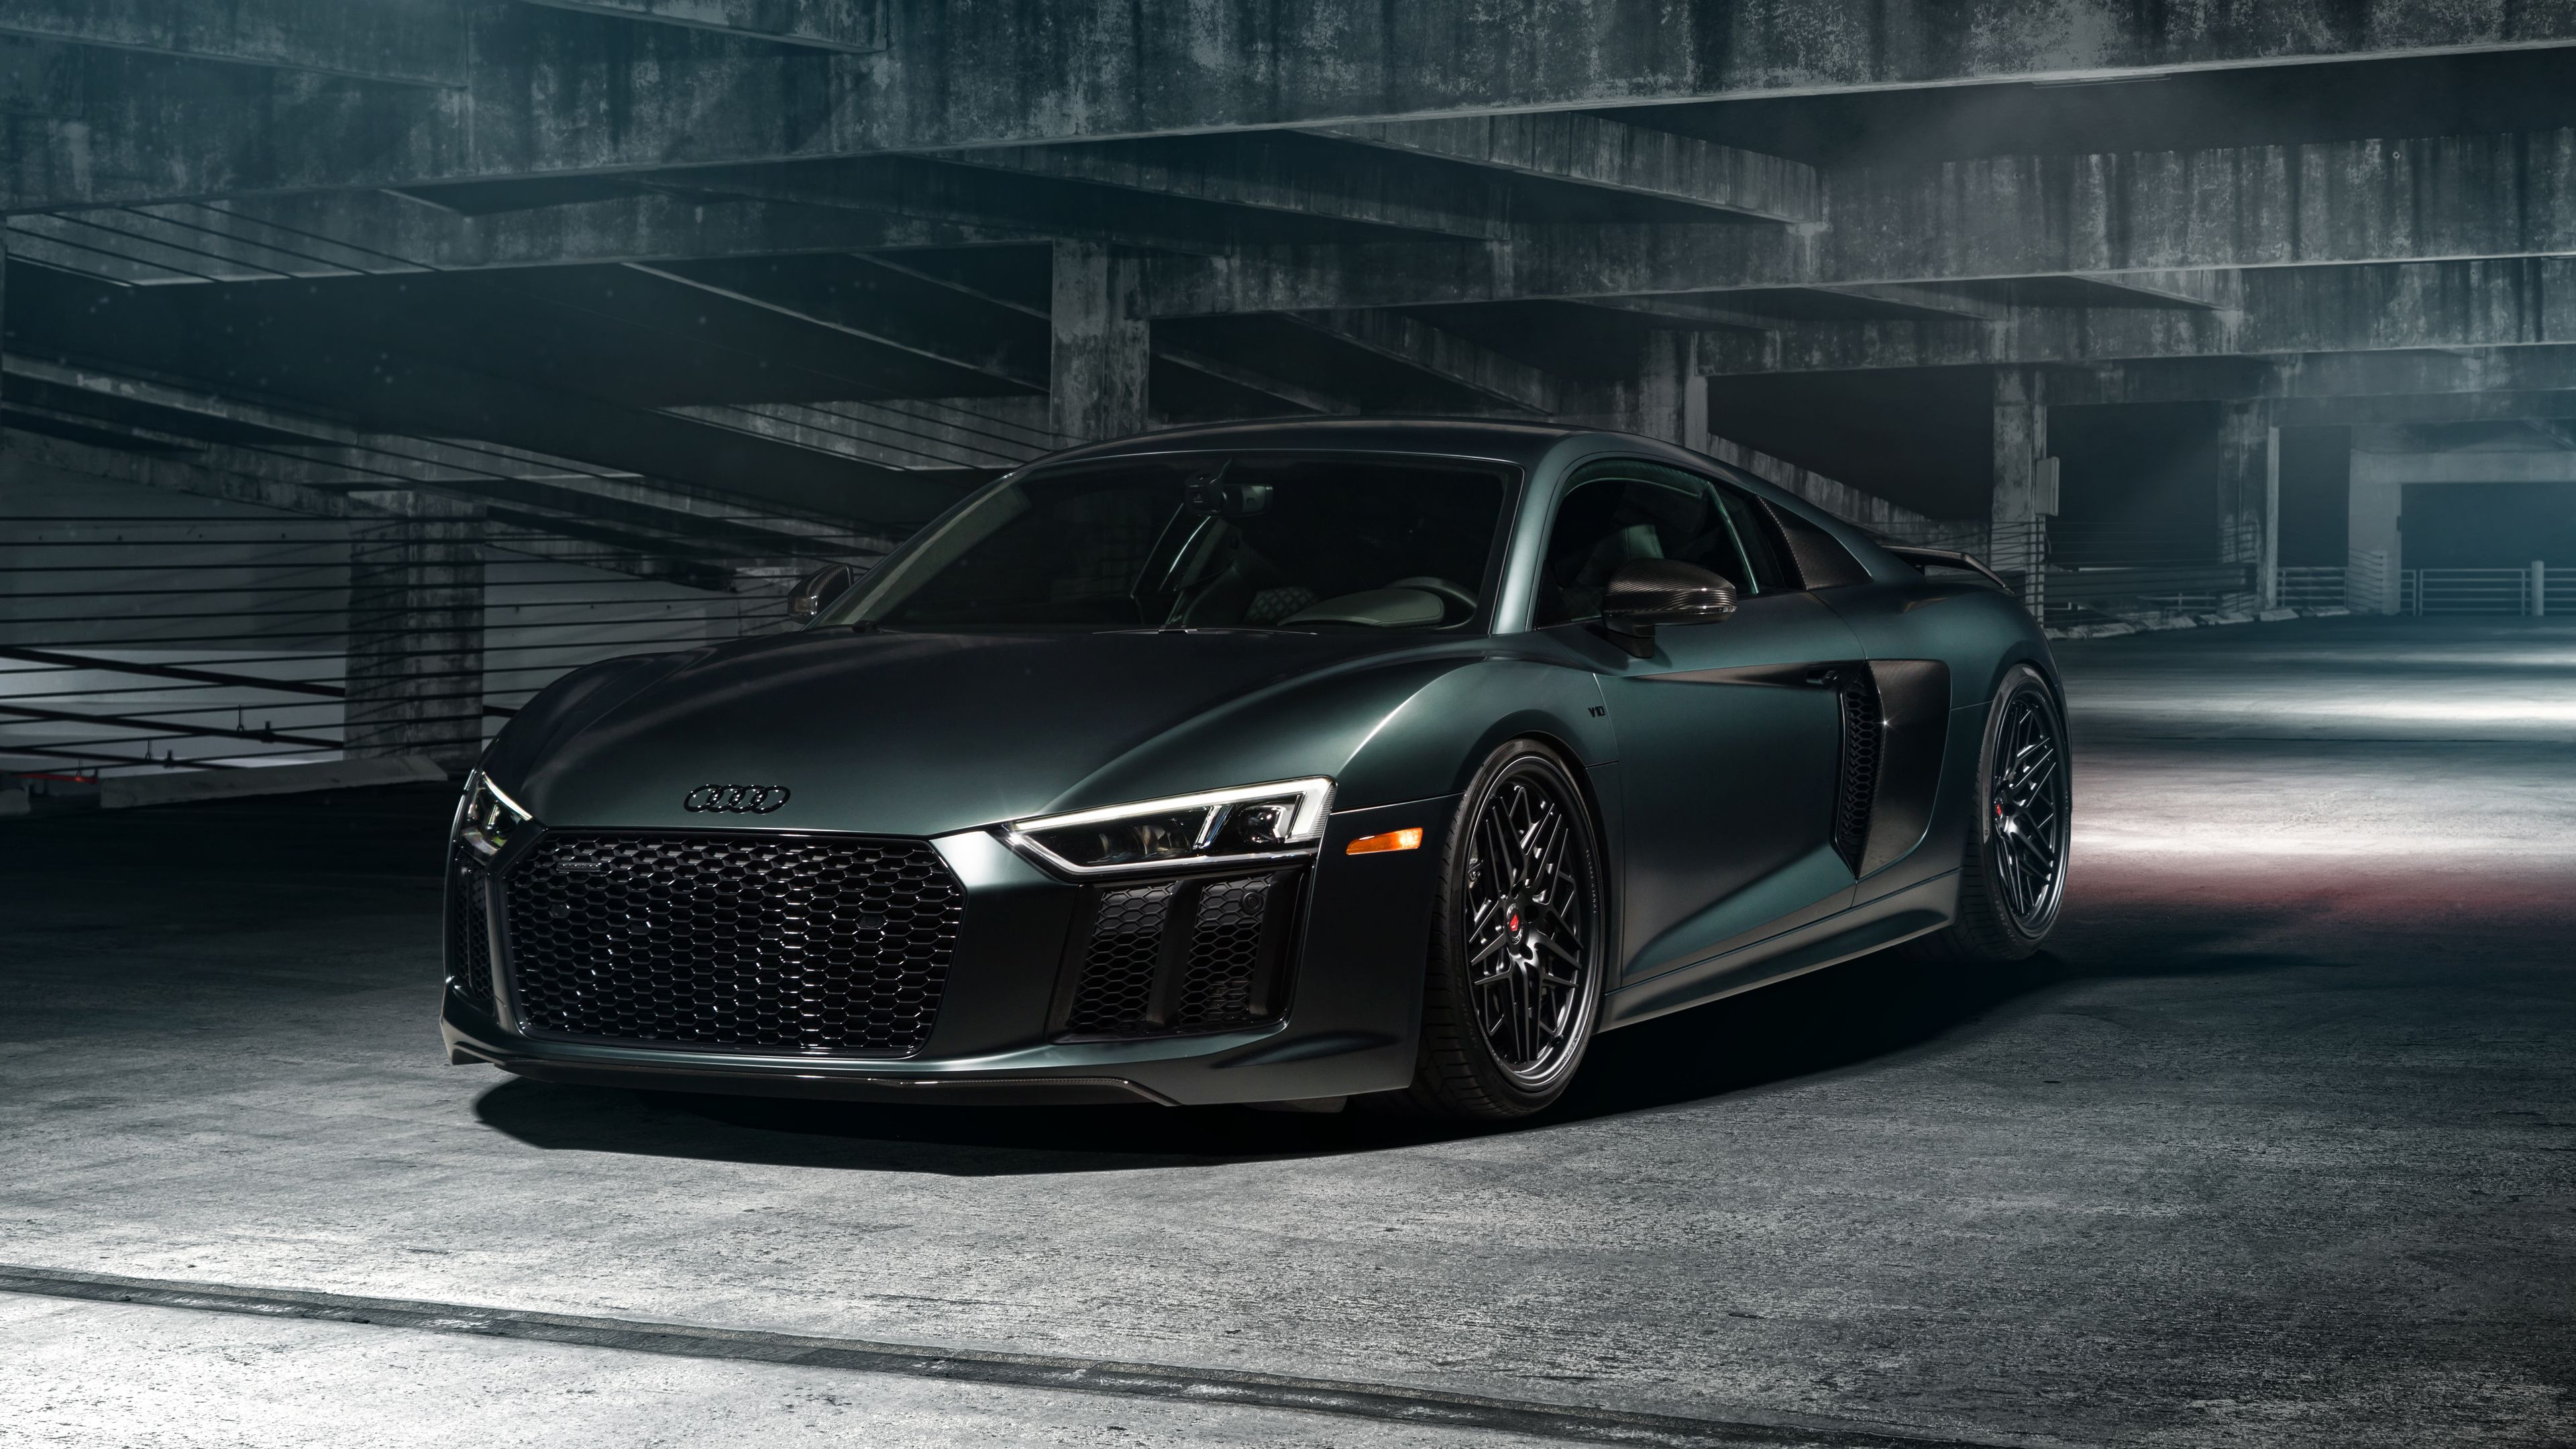 2017 Audi R8 V10 4k 5k Hd Wallpapers Cars Wallpapers Audi Wallpapers Audi R8 Wallpapers 5k Wall Audi R8 Wallpaper Best Luxury Sports Car Audi R8 Wallpapers